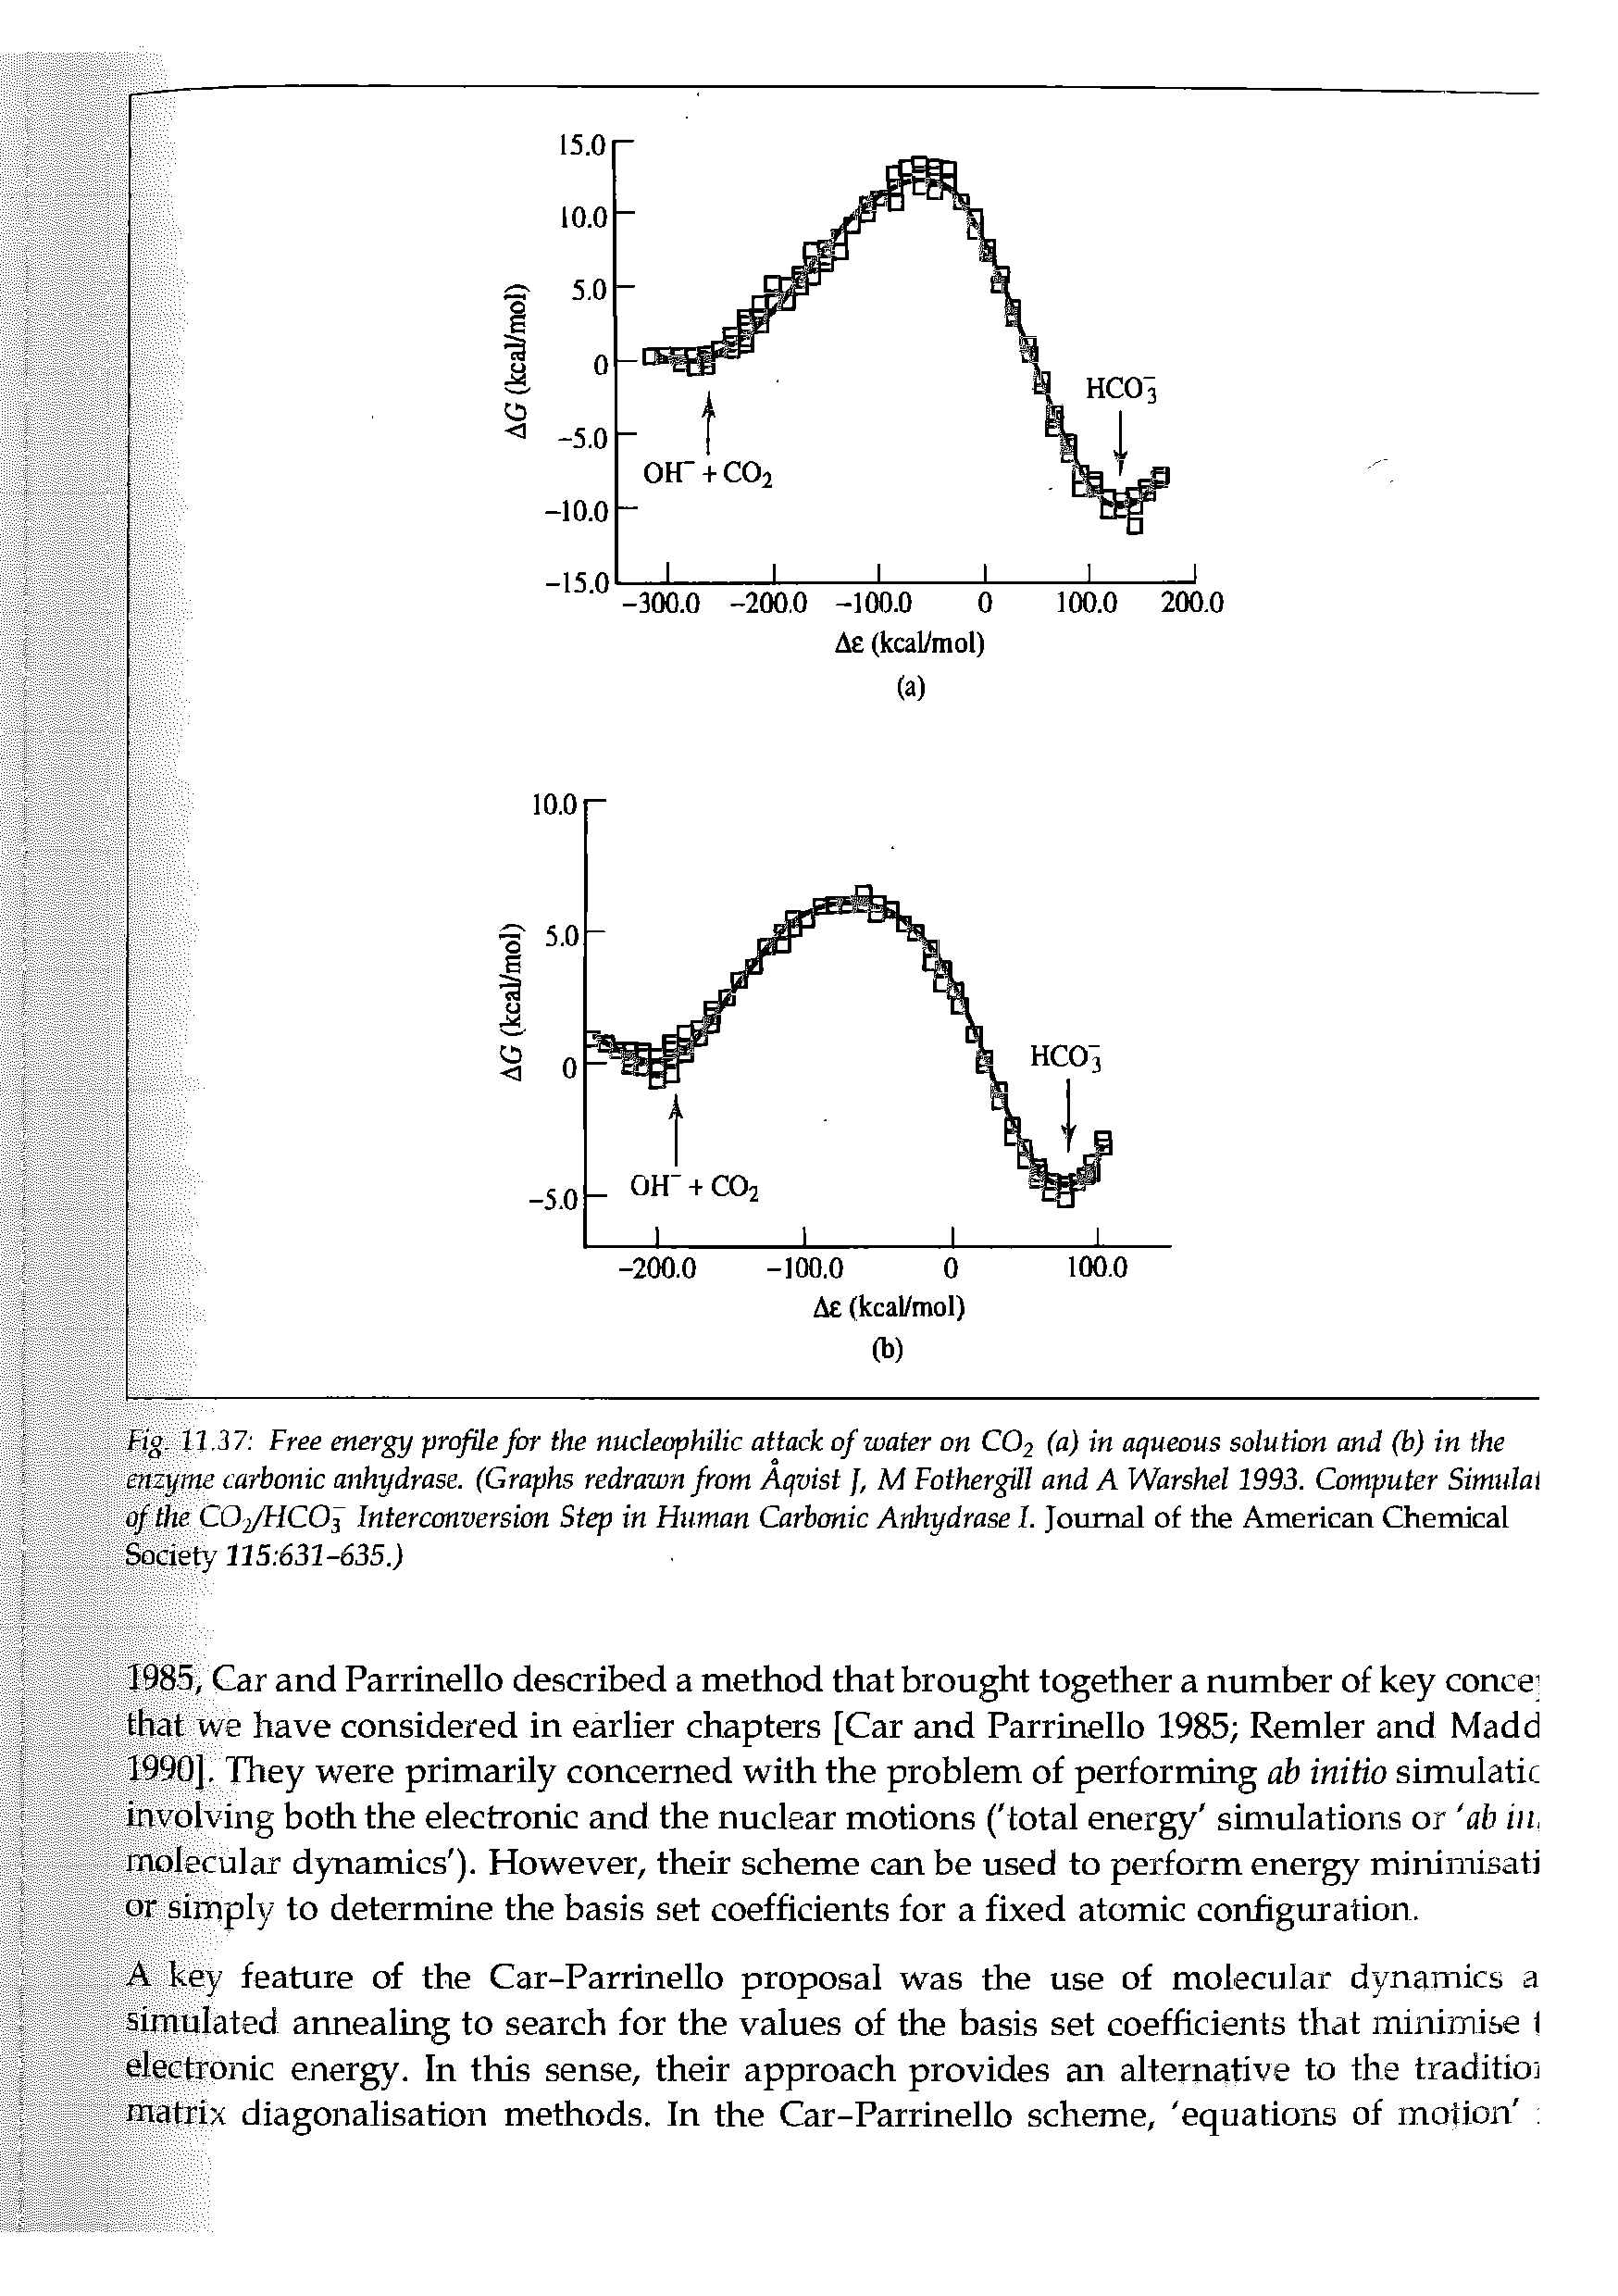 Fig. 11.37 Free energy profile for the nucleophilic attack of water on CO2 (a) in aqueous solution and (b) in the enzyme carbonic anhydrase. (Graphs redrawn from Aqvist J, M Fothergill and A Warshel 1993. Computer Simulai of the COj/HCOf Interconversion Step in Human Carbonic Anhydrase I. Journal of the American Chemical Society 115 631-635.)...